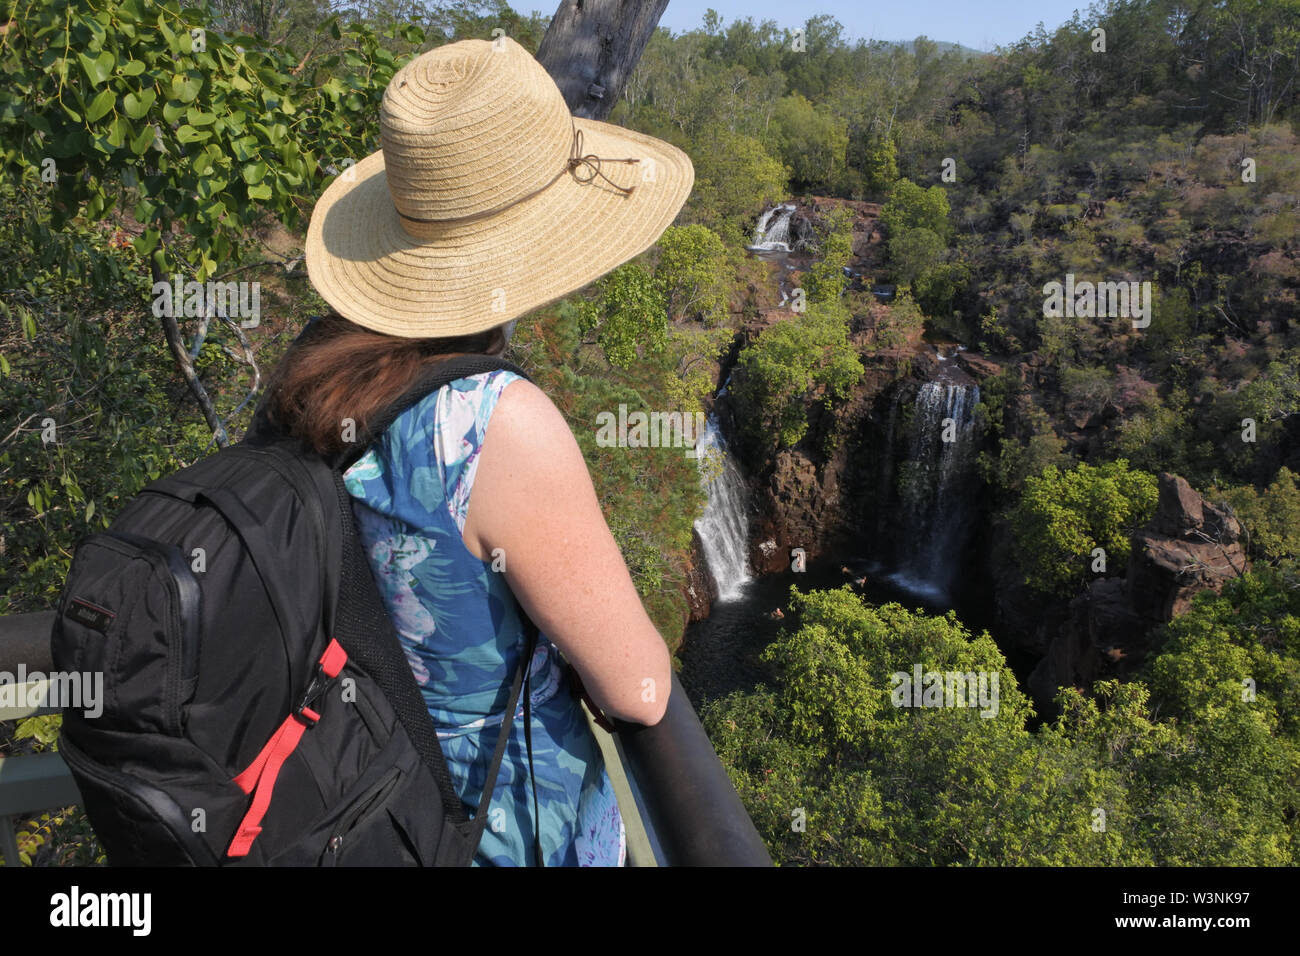 Australian adult woman tourist looking at lorence Falls in Litchfield National Park Northern Territory Australia - Stock Image